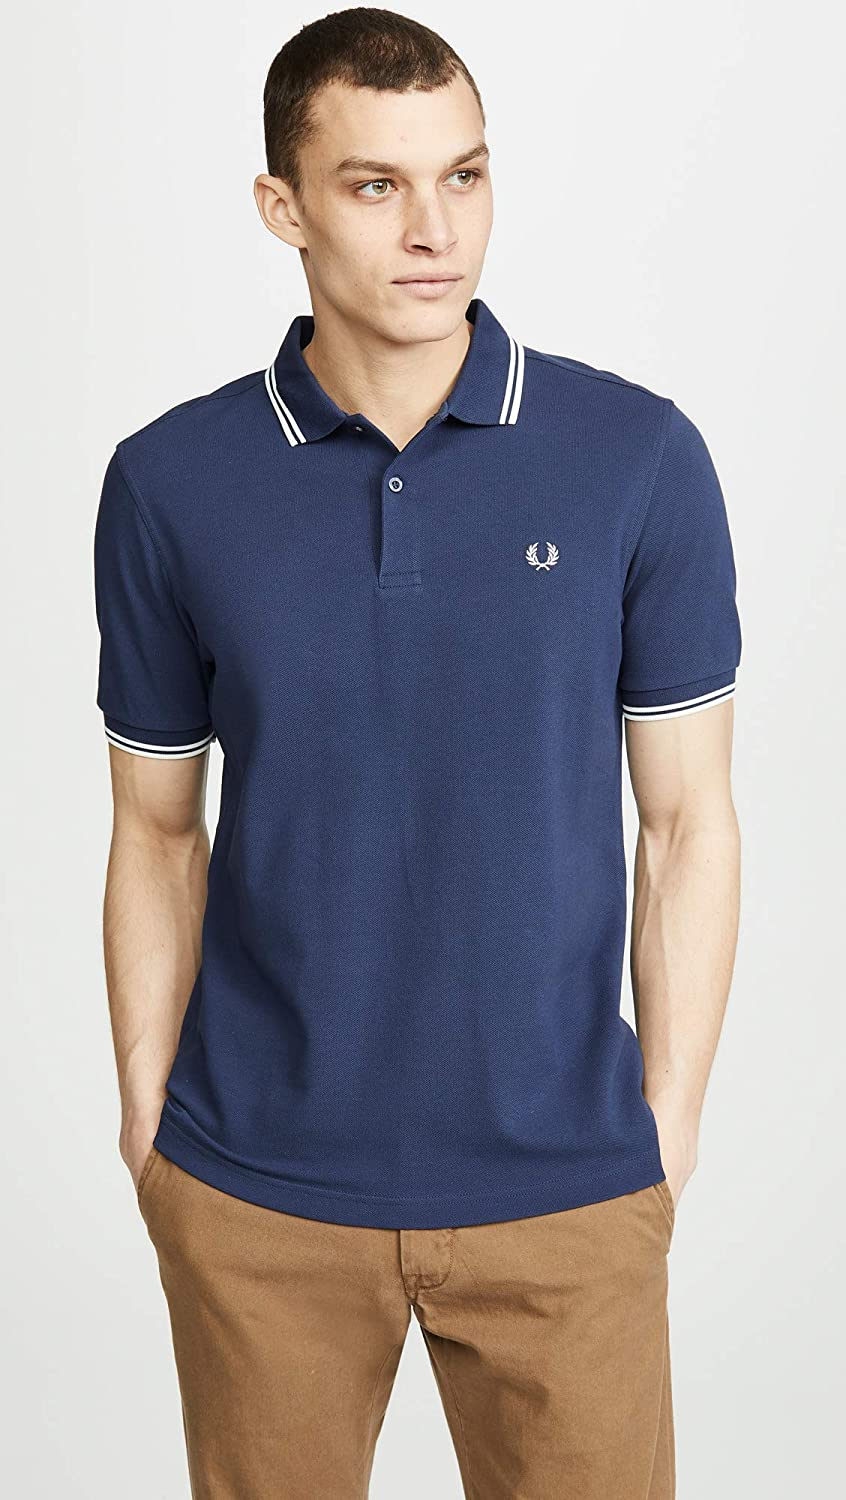 Frot Perry Twin Tipped Polo Polo Polo B07MCLZN2Z Poloshirts Louis, ausführlich efa607